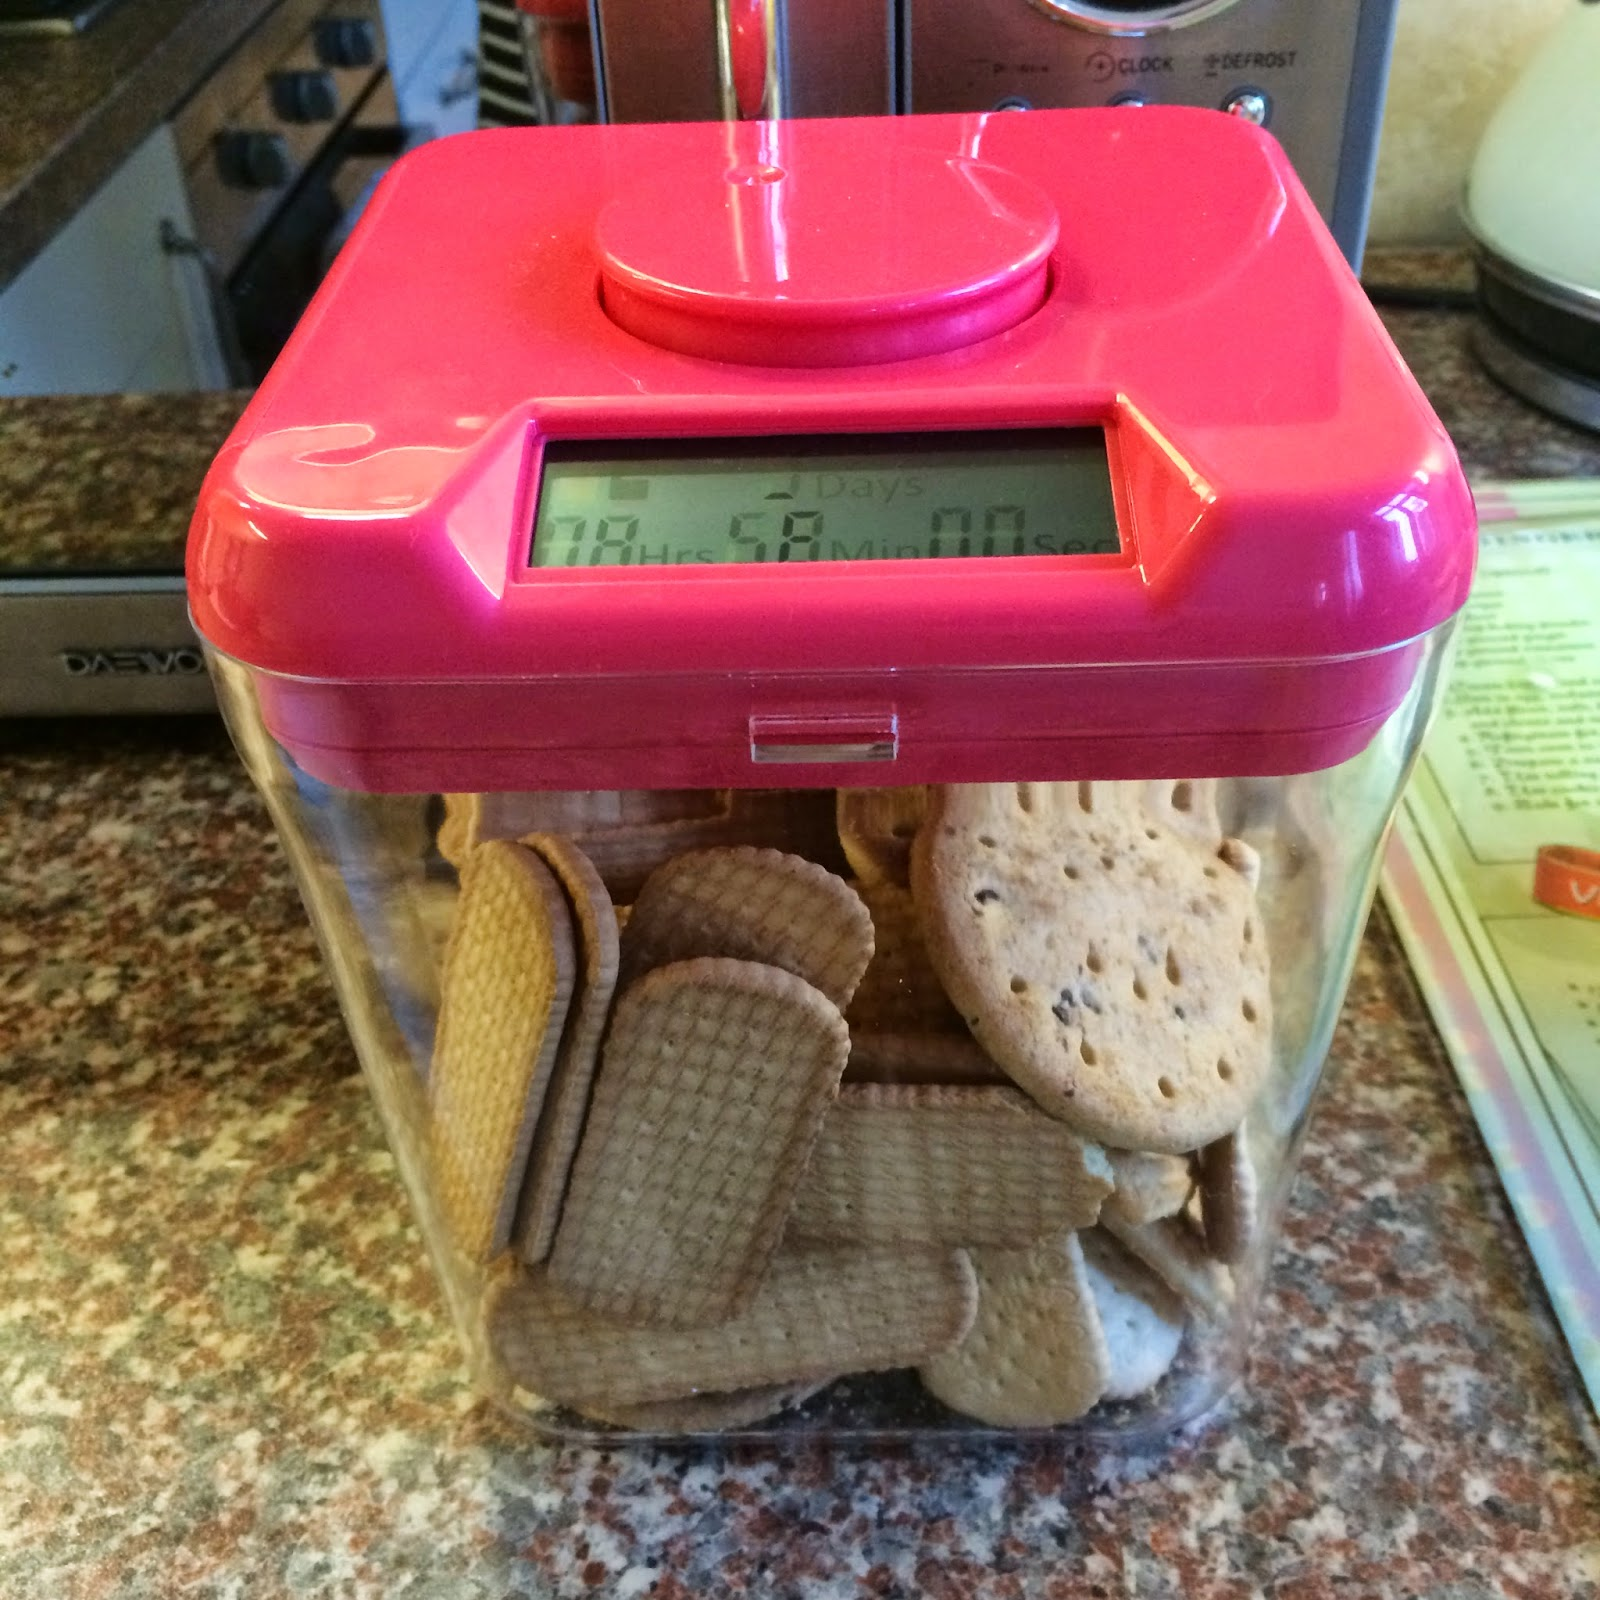 Mrs Bishops Bakes and Banter Weight Loss Update and Kitchen Safe REVIEW